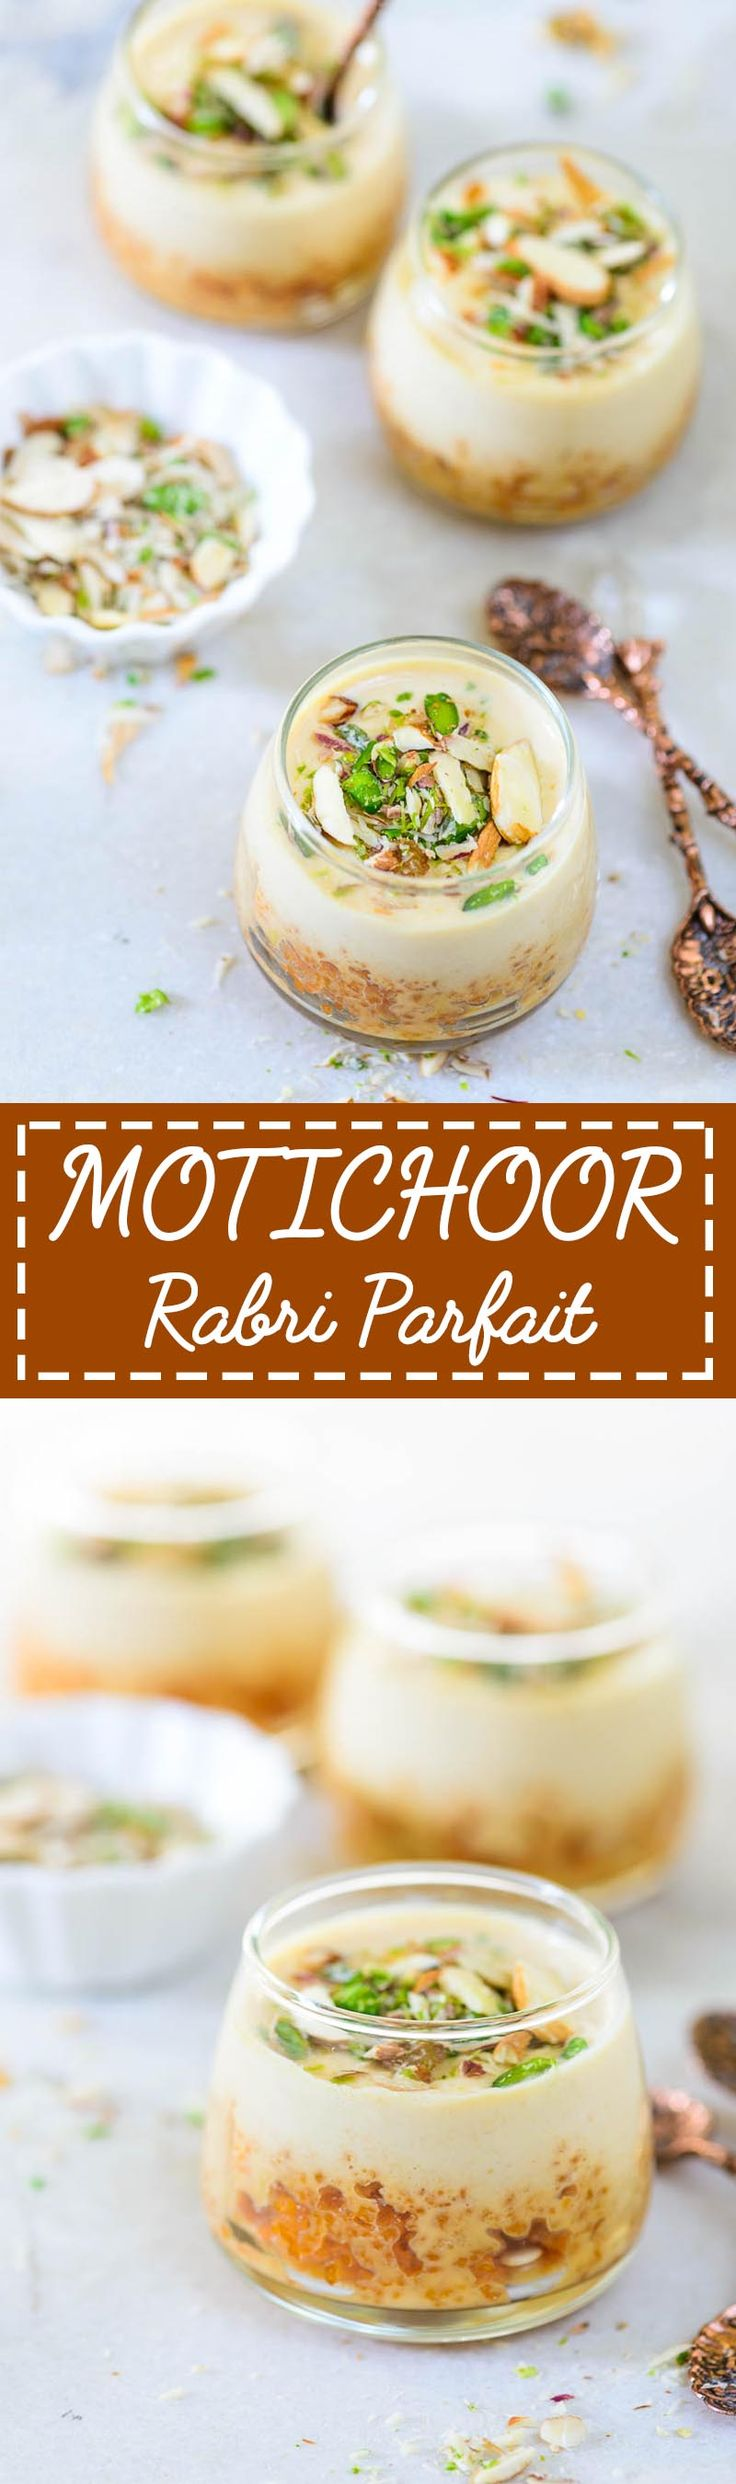 Motichoor Rabdi Parfait. A fancy dessert to make this diwali. Very easy and quick to assemble. Food photography and Styling by Neha Mathur.